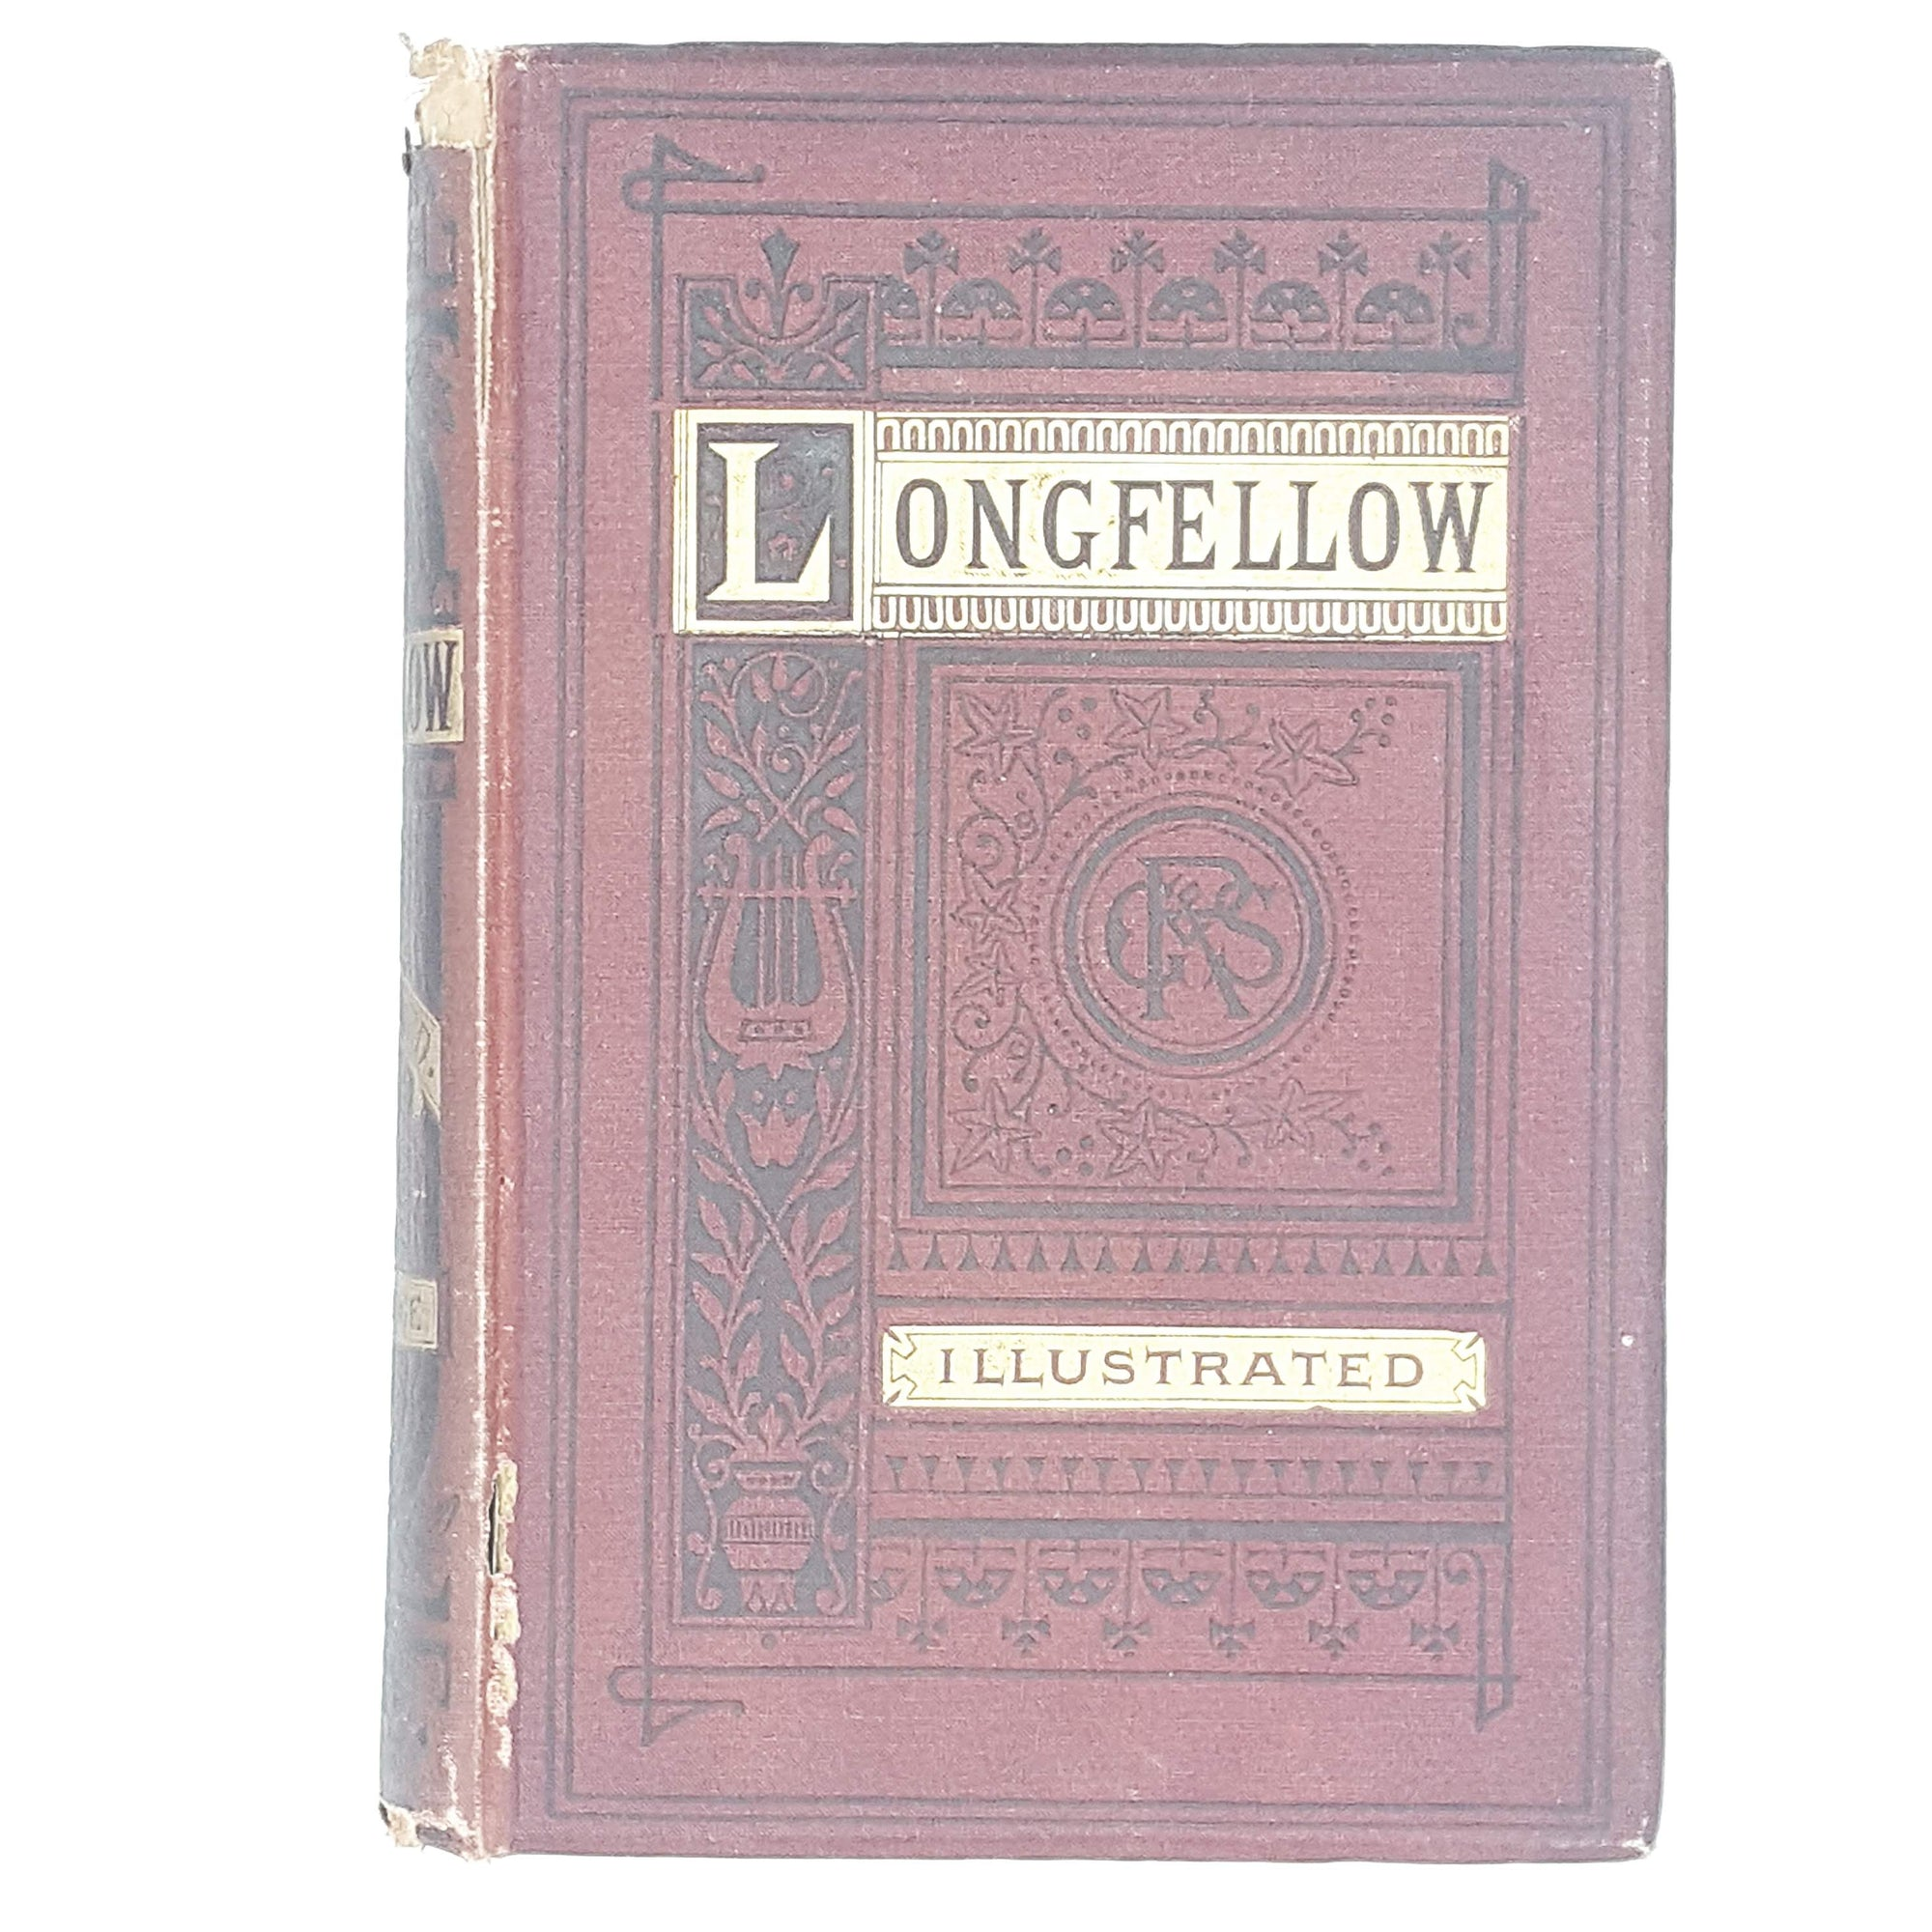 Illustrated Longfellow's Poetical Works c1876